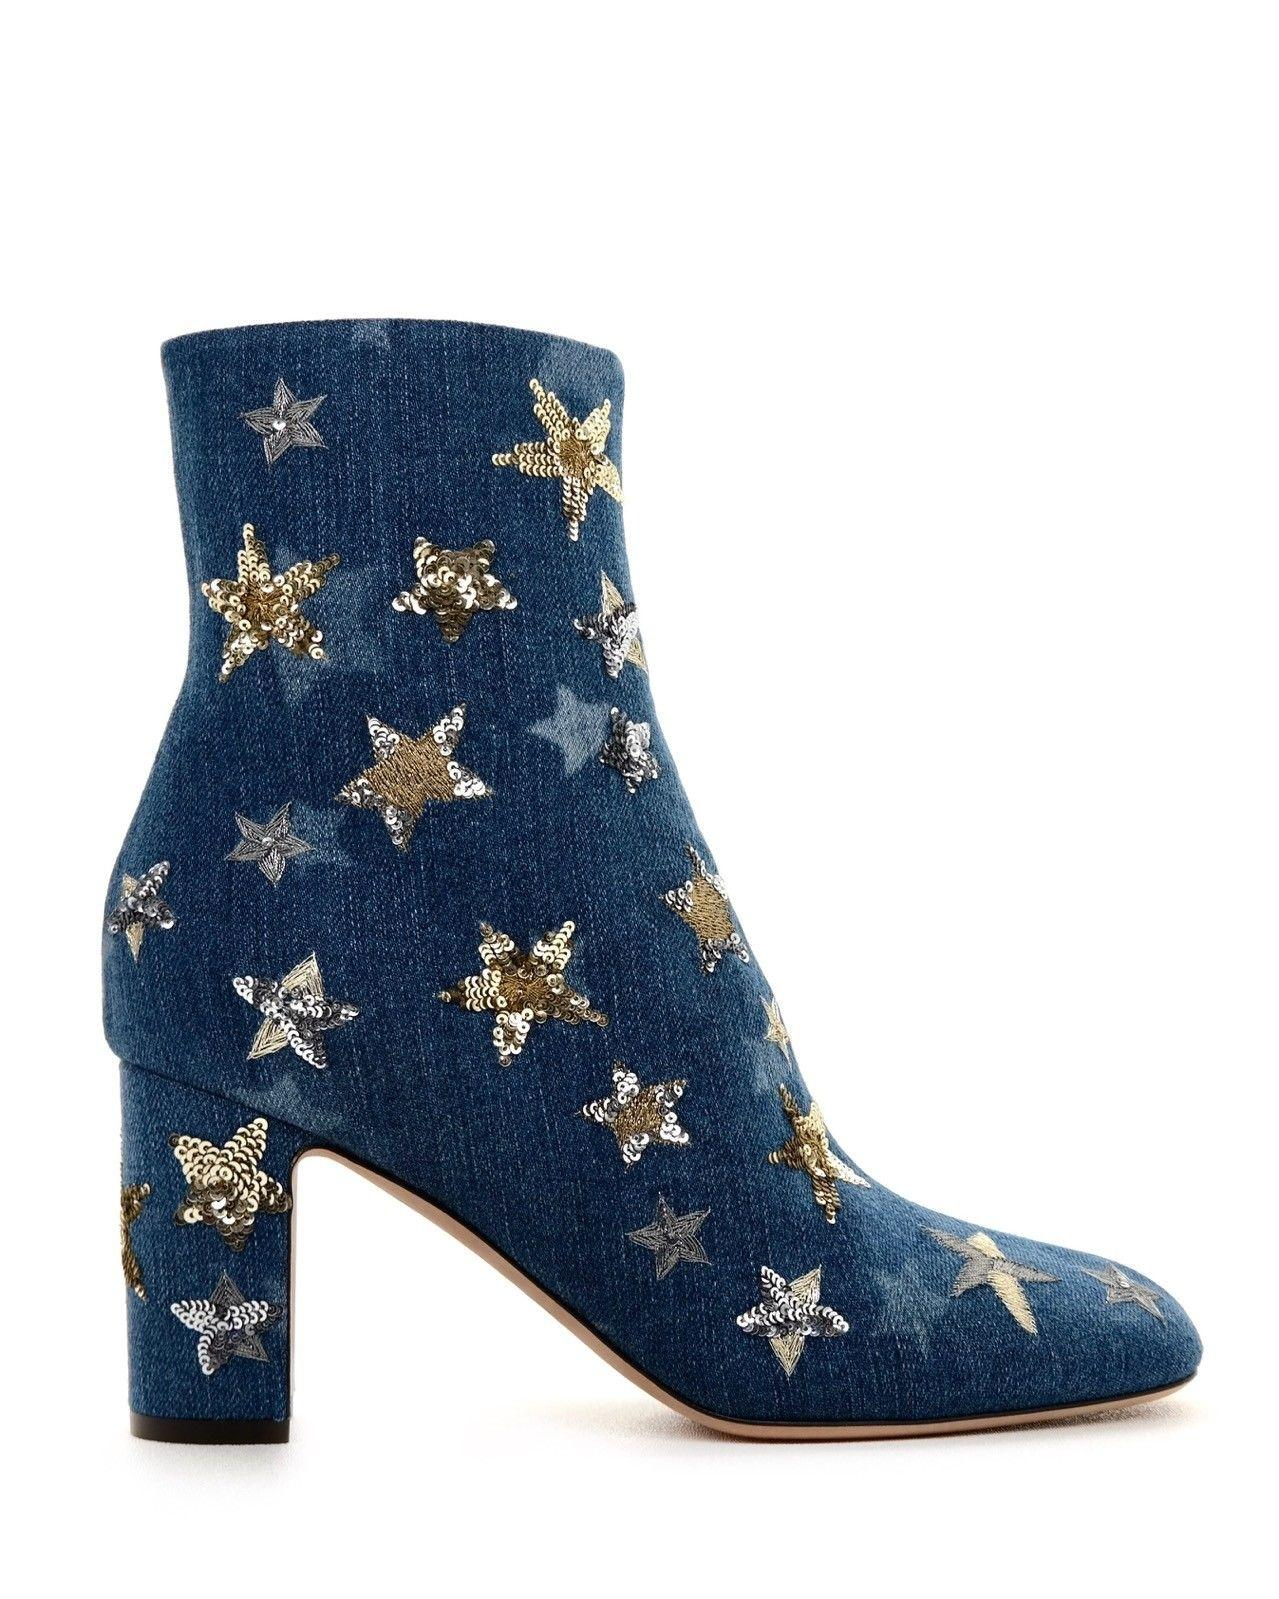 d147f6262e8 Valentino Blue Star Embellished Boots Booties Size EU 39 (Approx. US US US